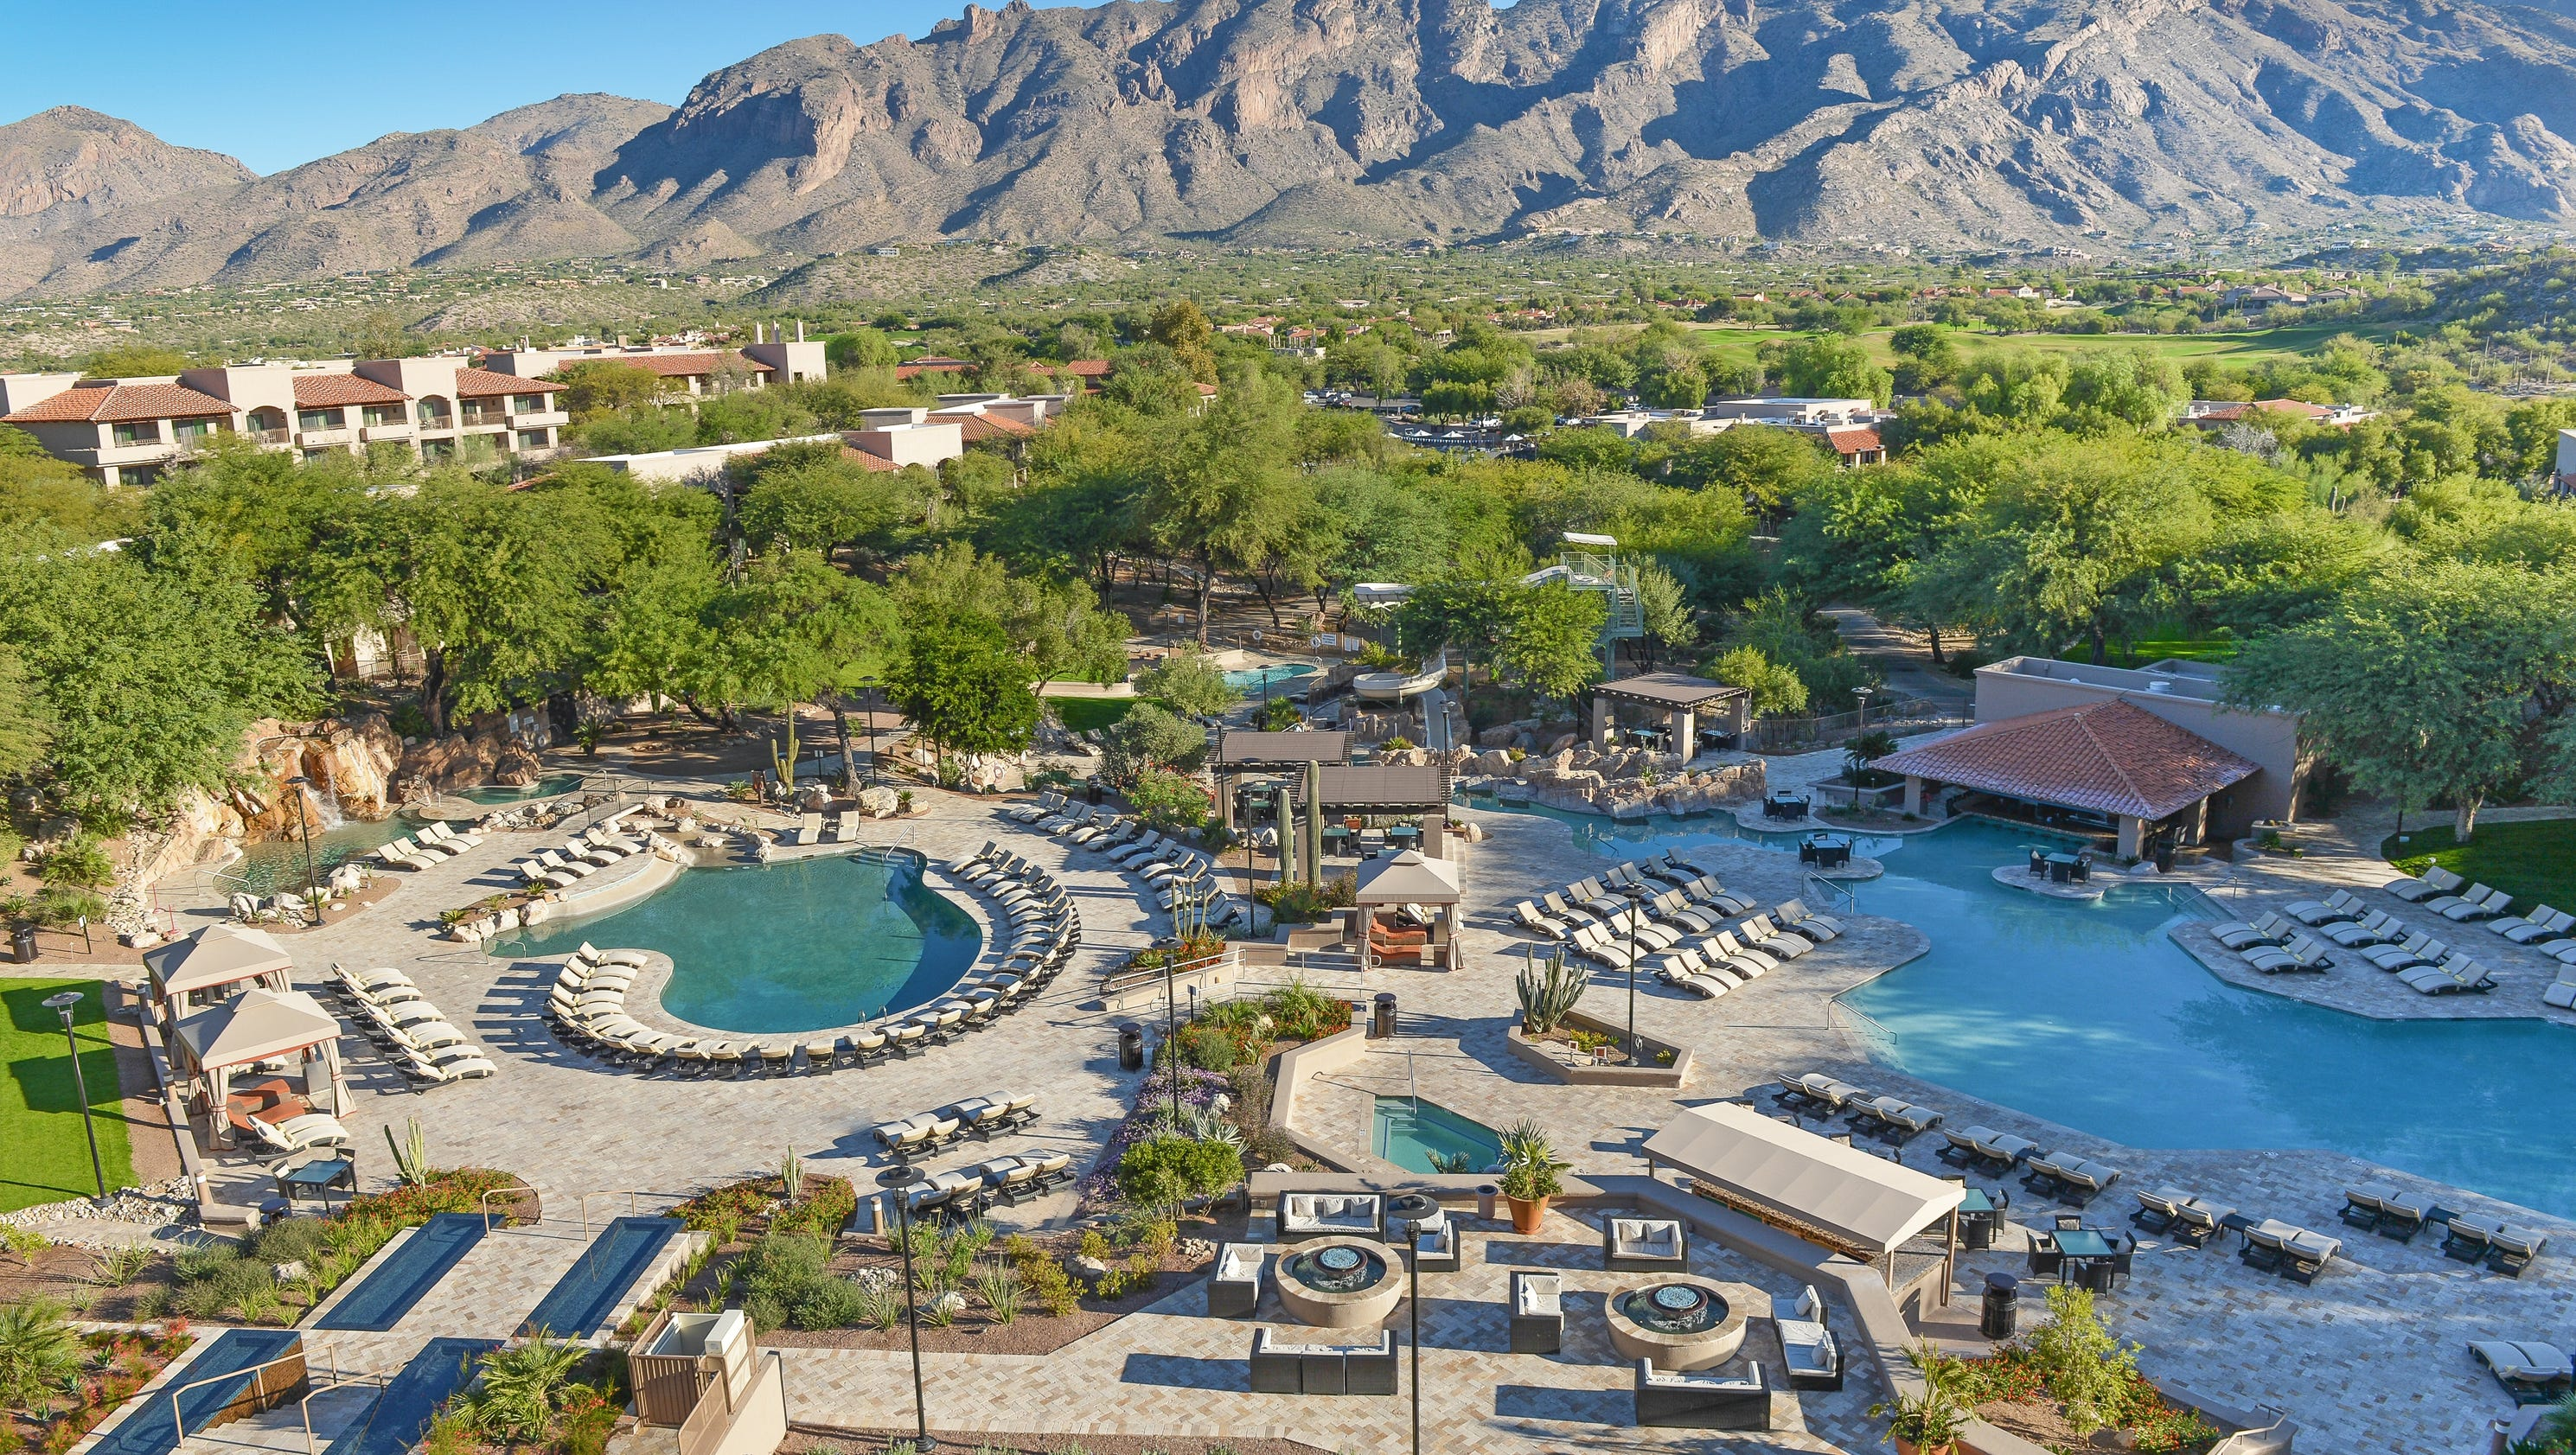 10 Best Hotels In Tucson